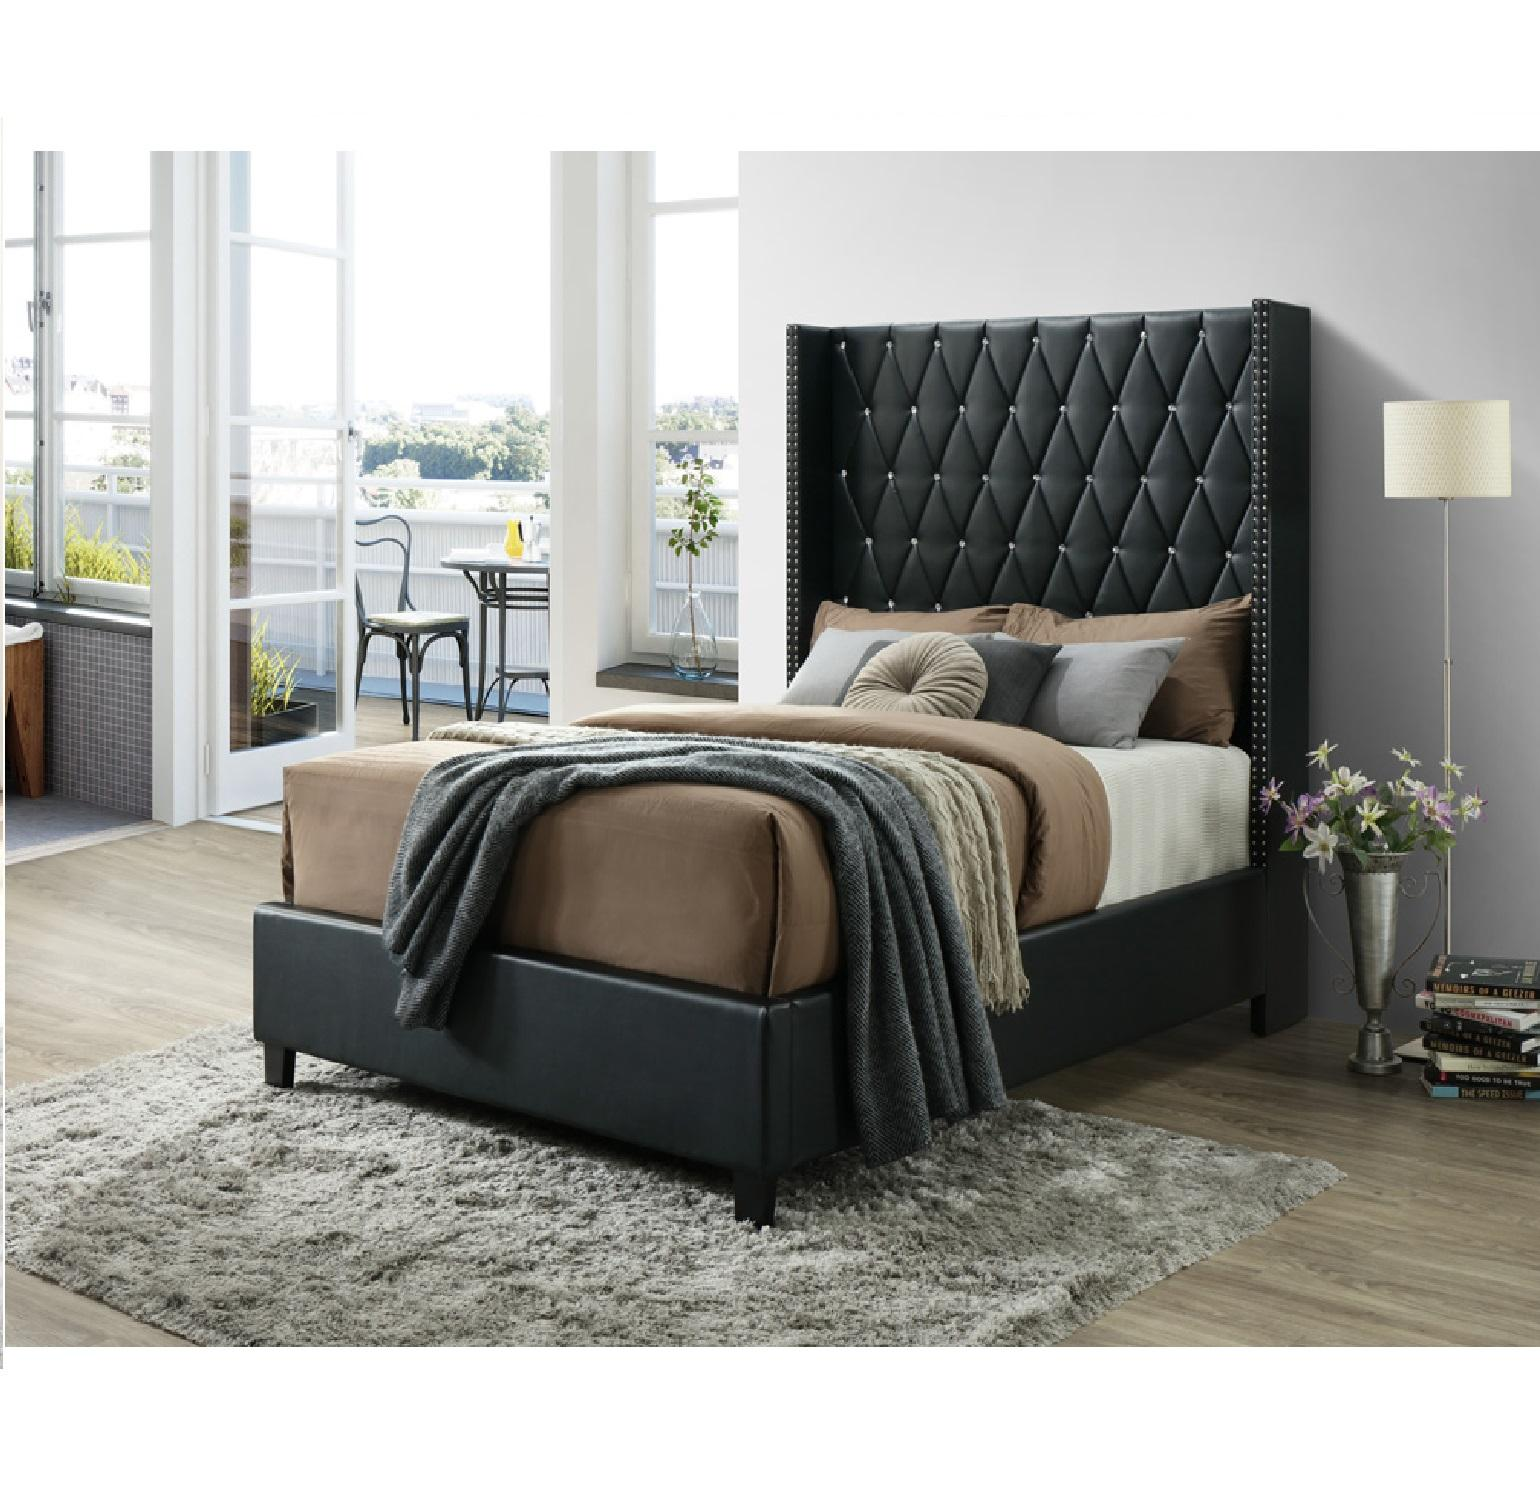 CONTEMPORARY HIGH ALEXIA BED WITH STUDDED WING